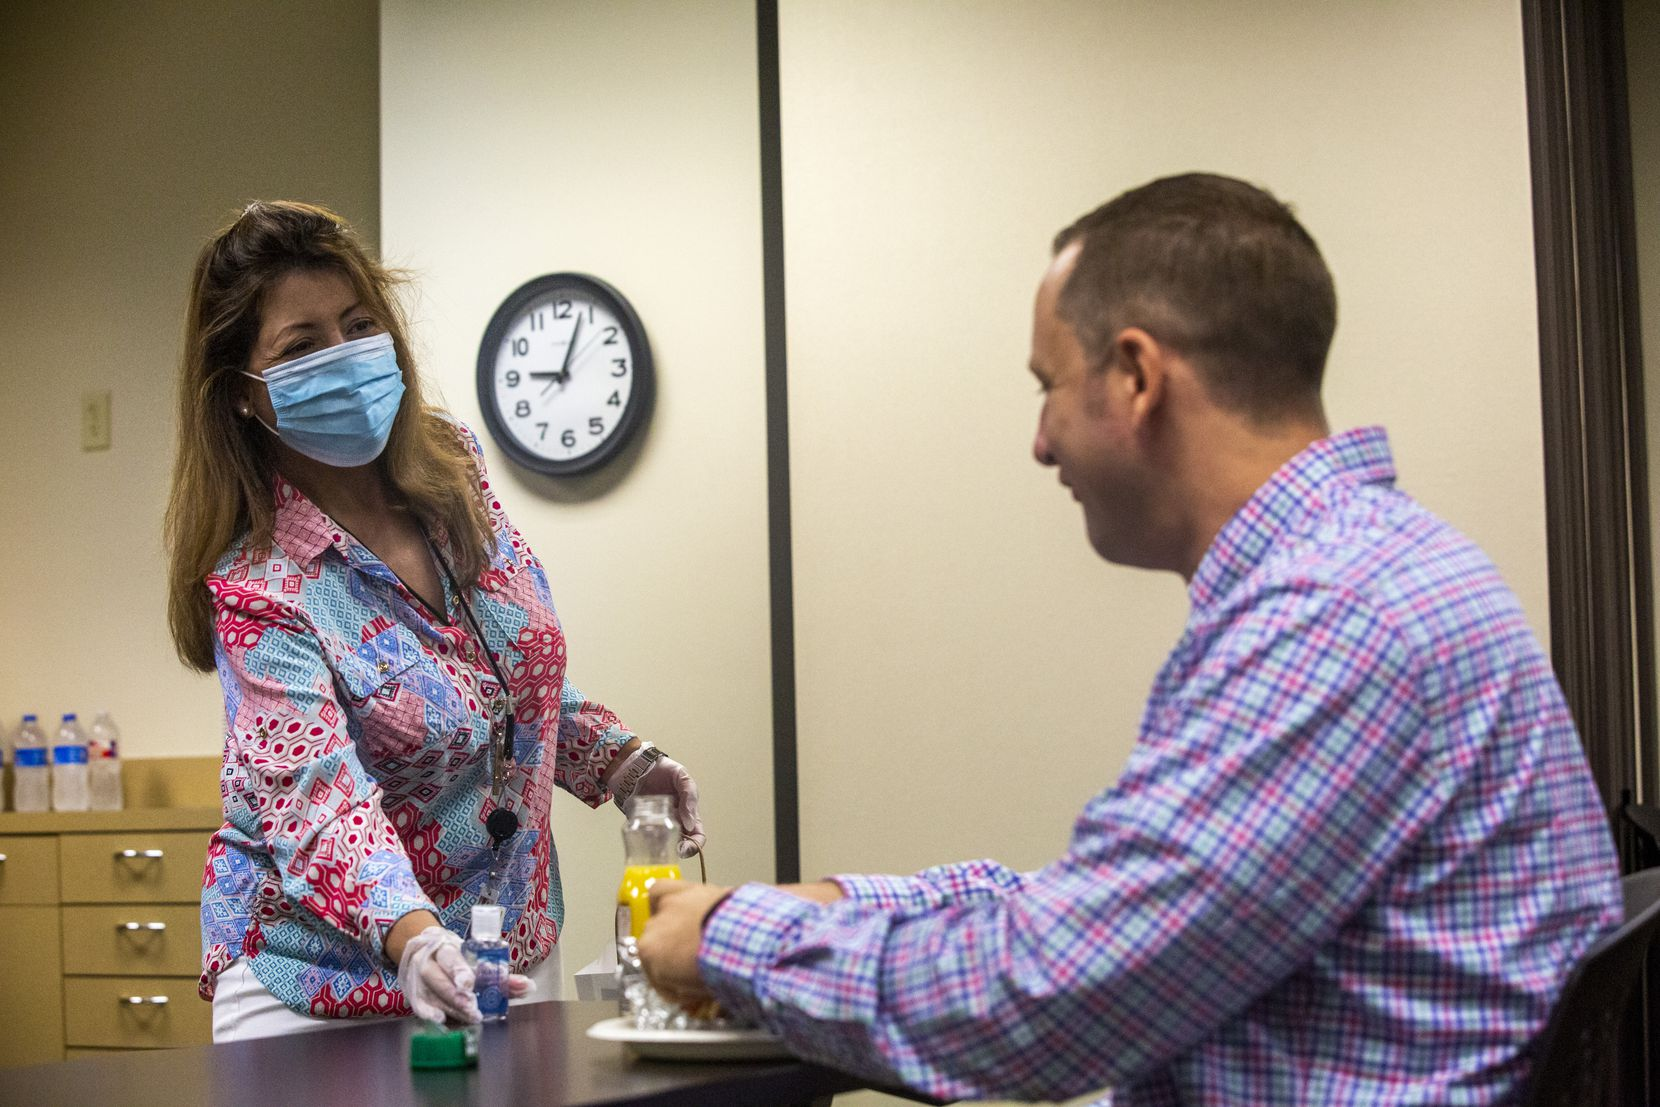 Administrative assistant Robbie Marquez (left) hands a hand sanitizer bottle to new hire and quality assurance analyst Daniel Stirrat during a meet-and-greet breakfast with new company hires at the VPay office in Plano.